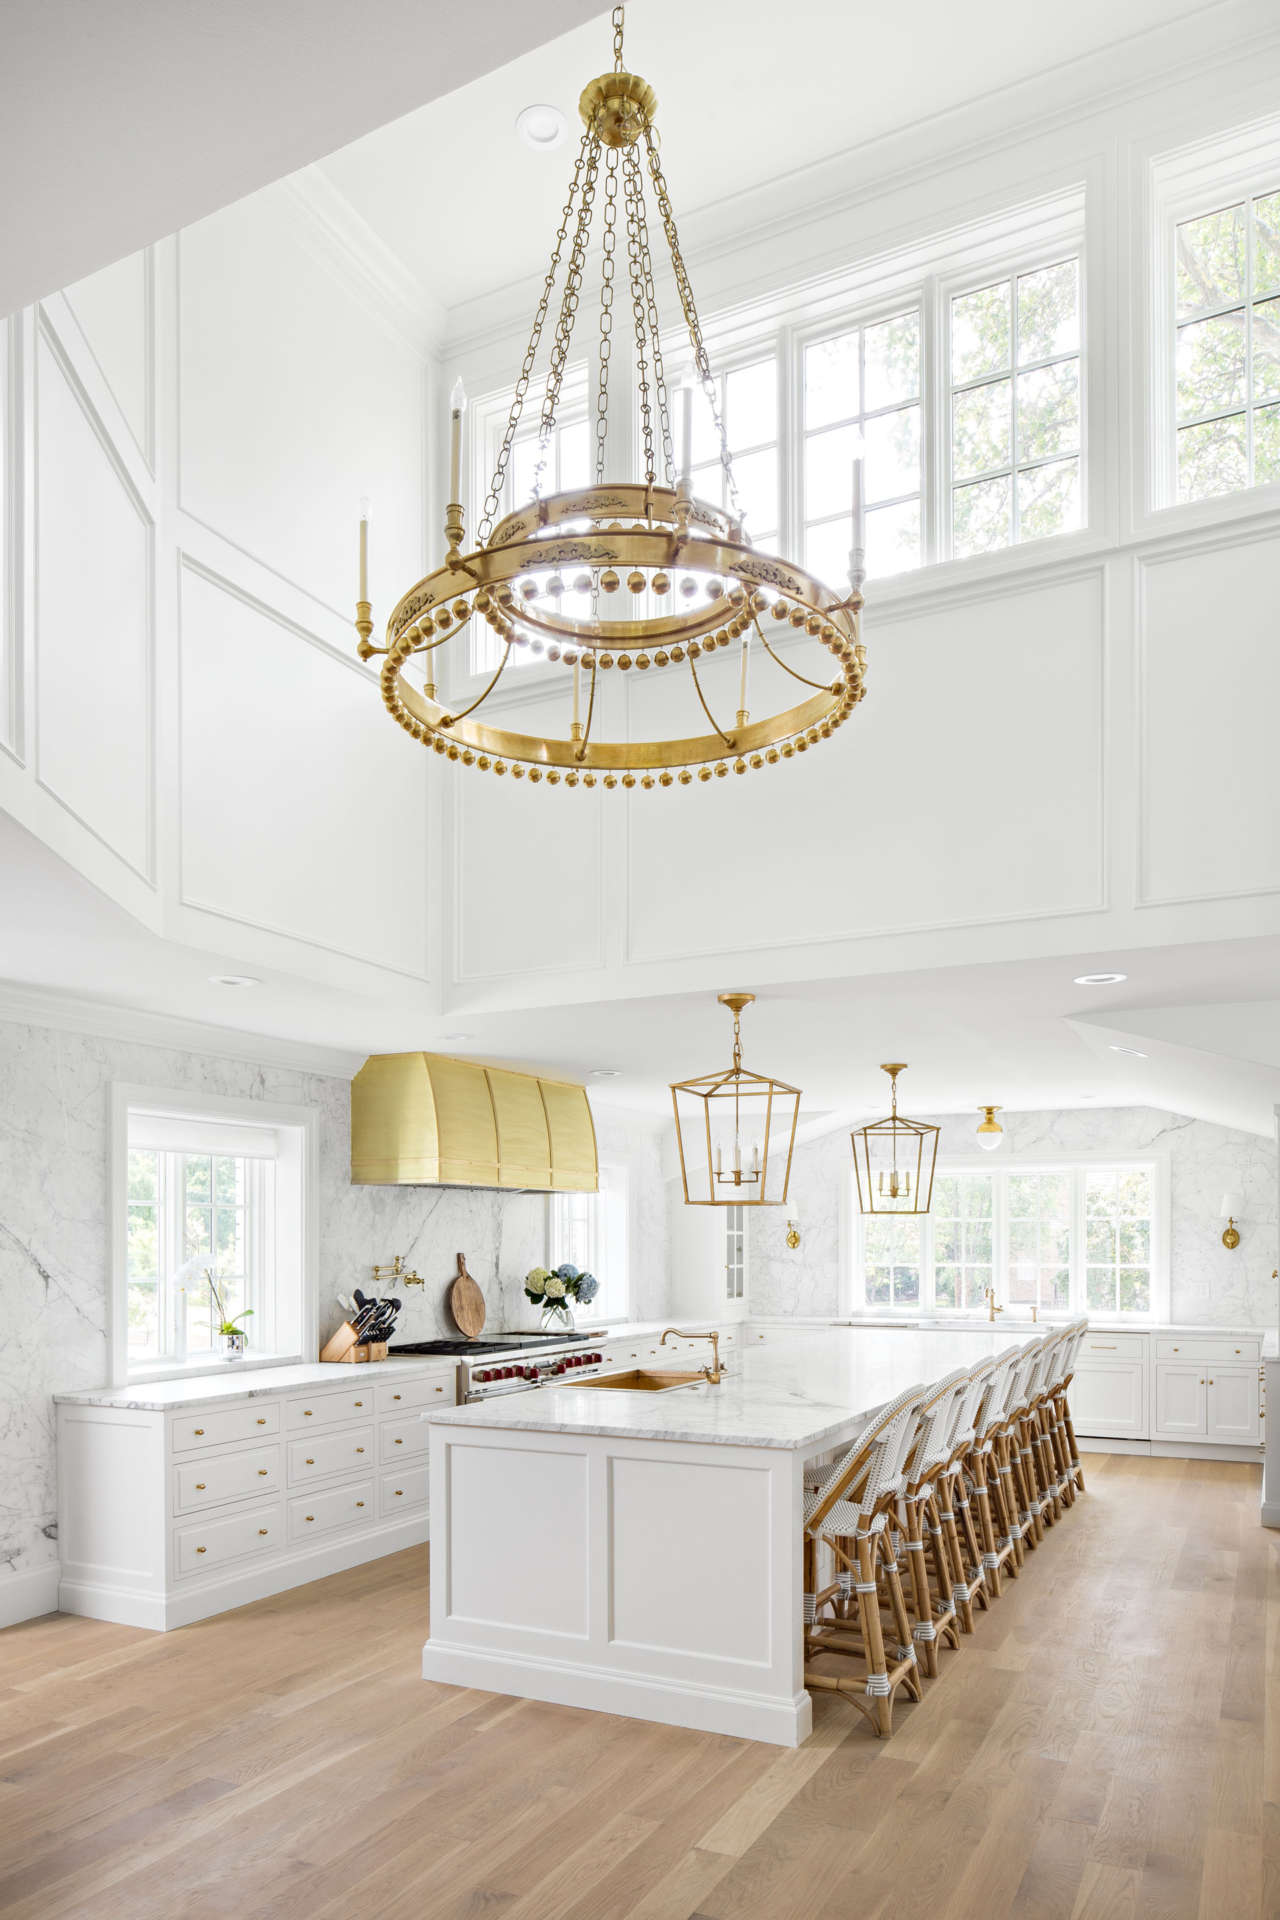 Classic coastal style white kitchen reminiscent of Something's Gotta Give kitchen! Kitchen Design Ideas to Inspire your own kitchen renovation, makeover, DIY, spruce up, or brand new kitchen! Score decorating ideas and style inspiration on Hello Lovely Studio. #kitchendesign #kitchenremodel #kitchenideas